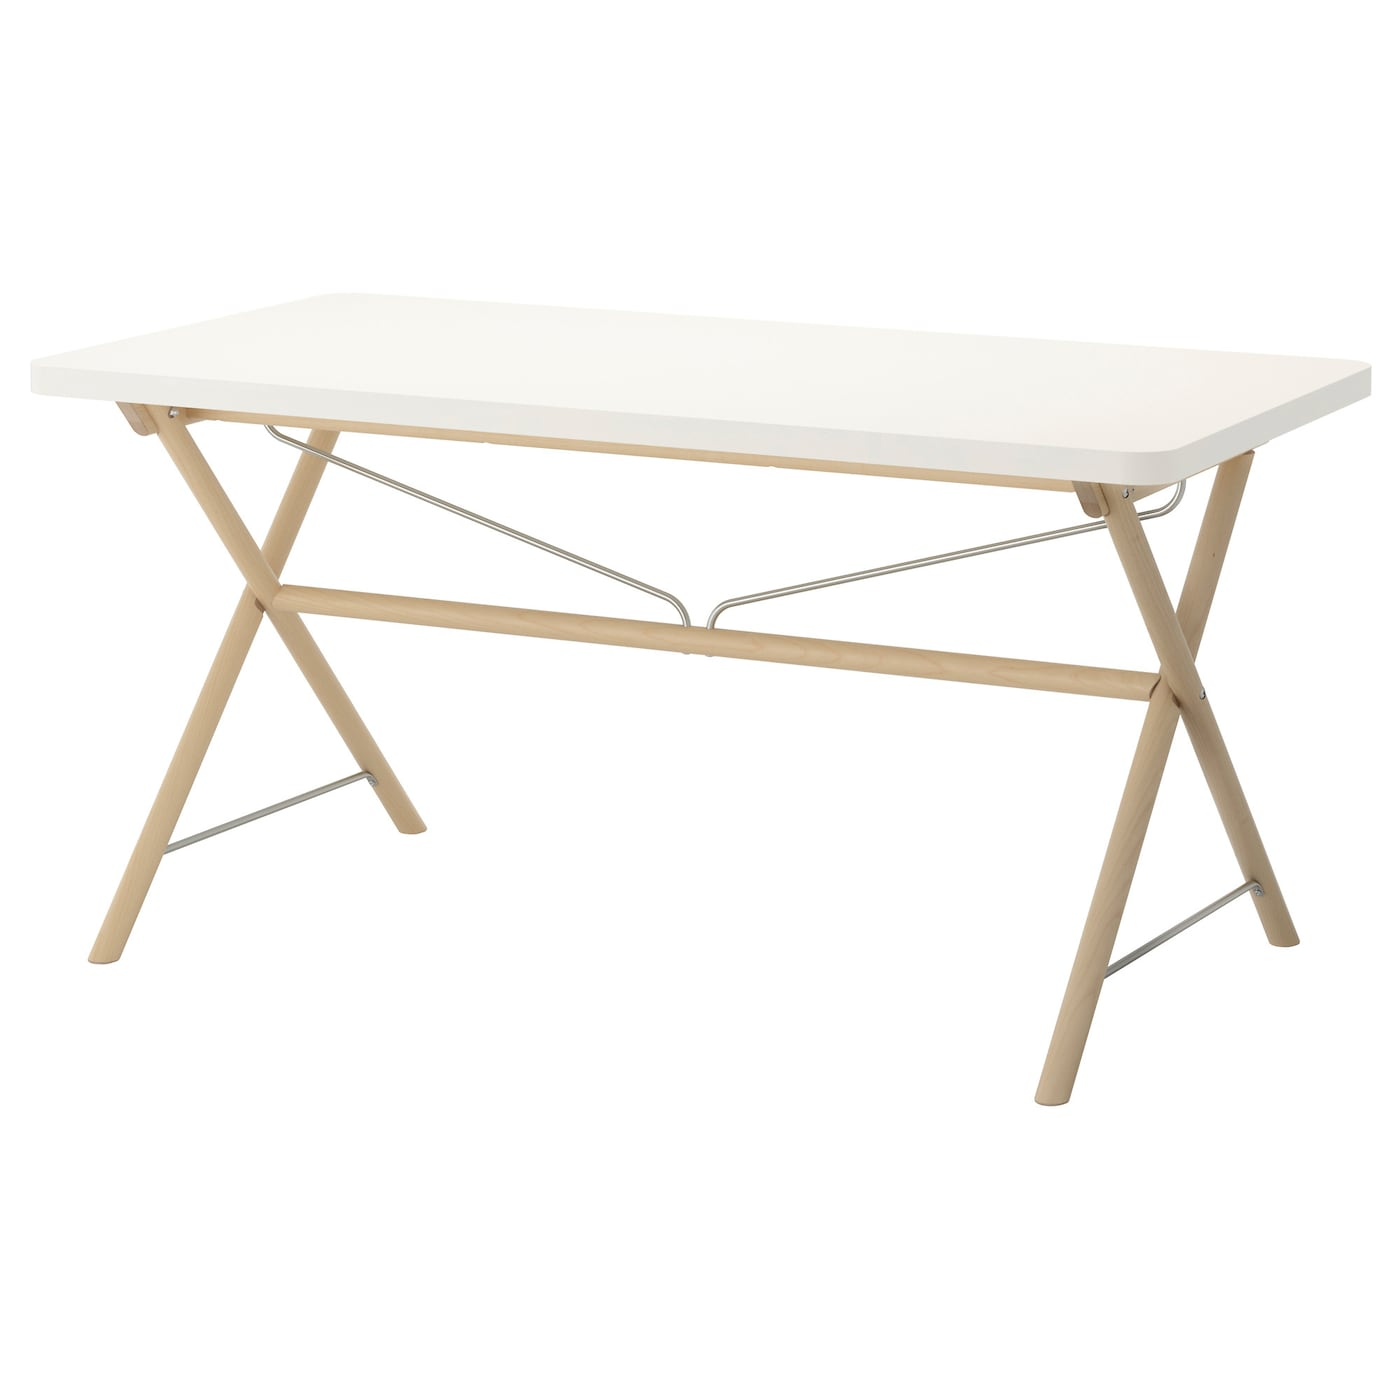 Rydeb ck table white dalshult birch 150x78 cm ikea for Table 4 personnes ikea